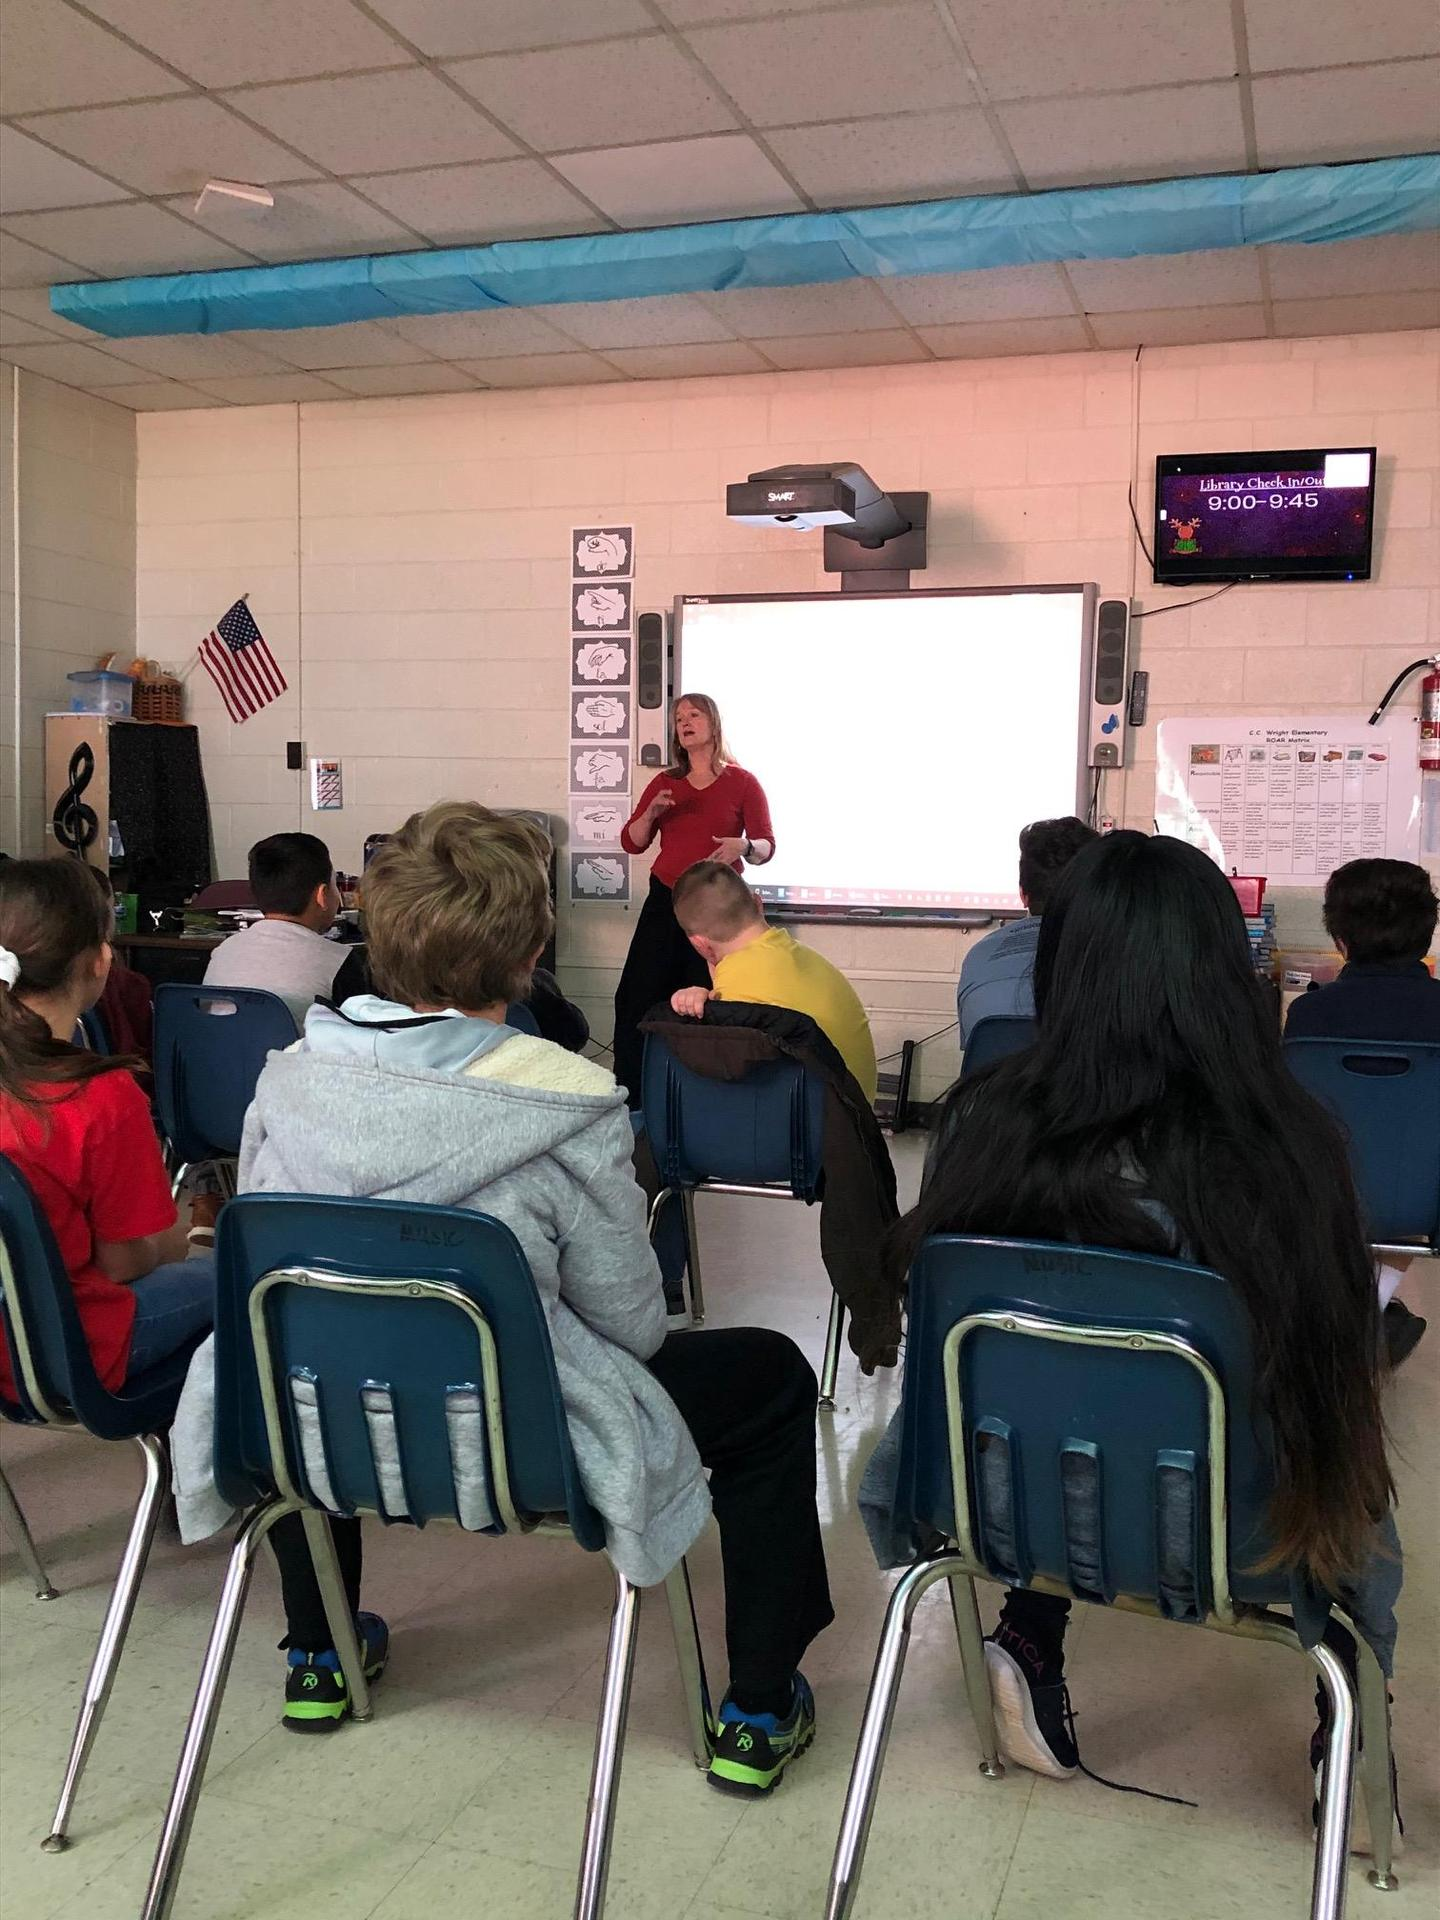 Ms. Church teaches 5th grade